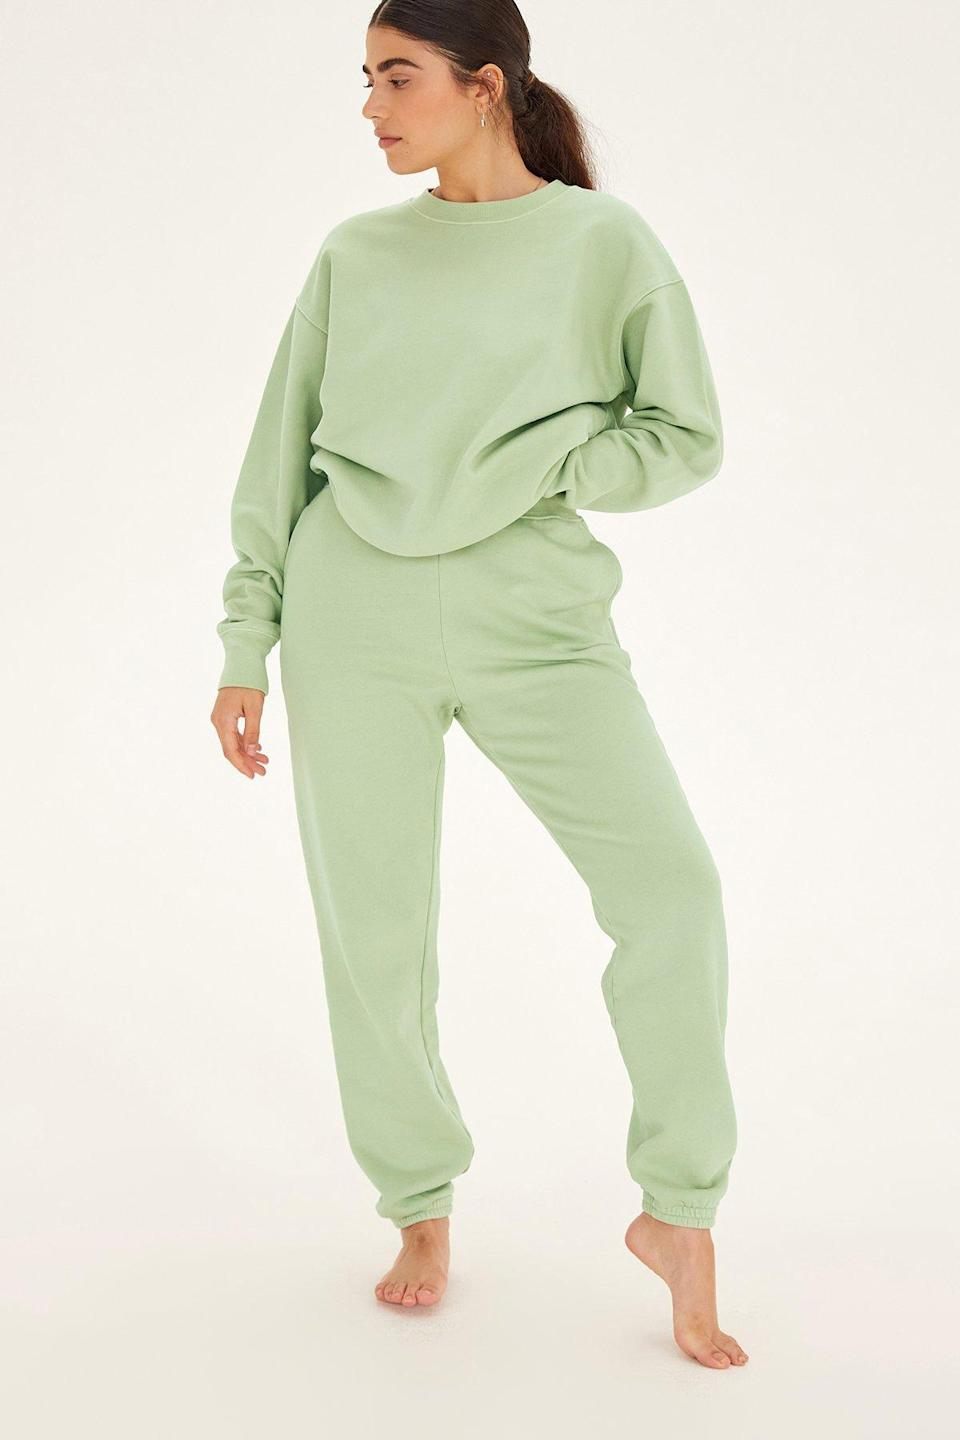 """Prepare to become a complete (cute) couch potato in these cozy sweatpants. $78, Girlfriend Collective. <a href=""""https://www.girlfriend.com/products/pistachio-classic-jogger"""" rel=""""nofollow noopener"""" target=""""_blank"""" data-ylk=""""slk:Get it now!"""" class=""""link rapid-noclick-resp"""">Get it now!</a>"""